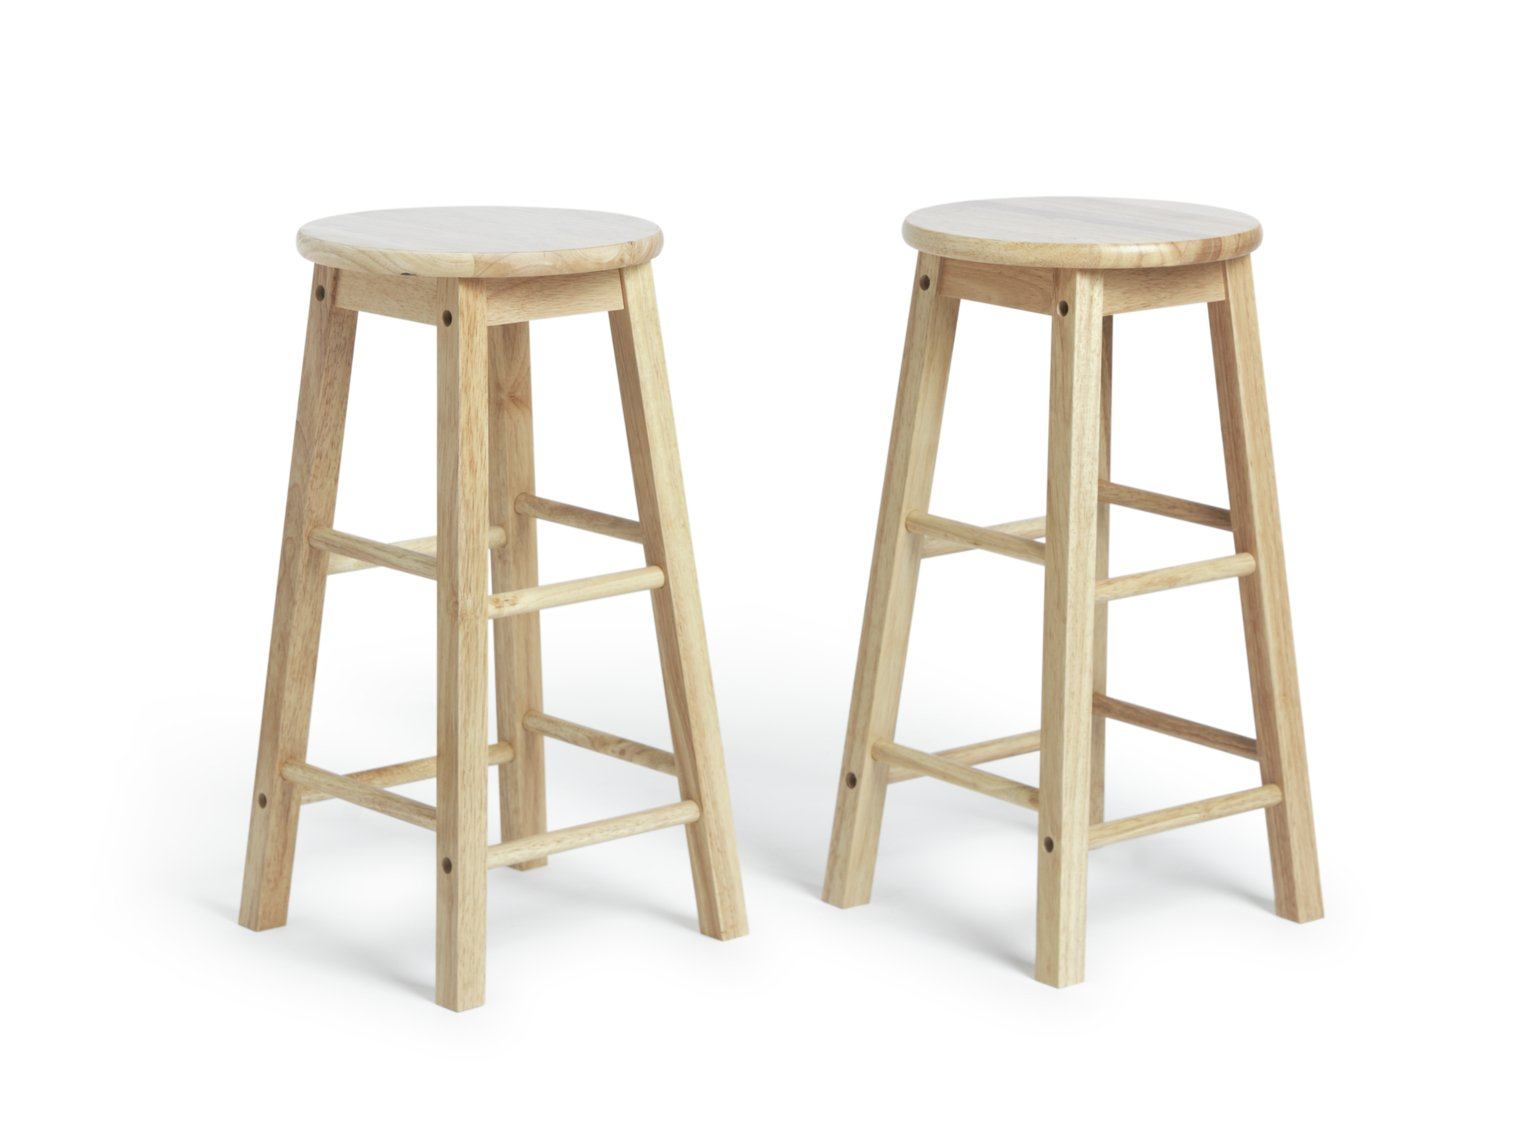 Buy Simple Value Pair Of Solid Wood Kitchen Stools | Bar Stools And Chairs  | Argos